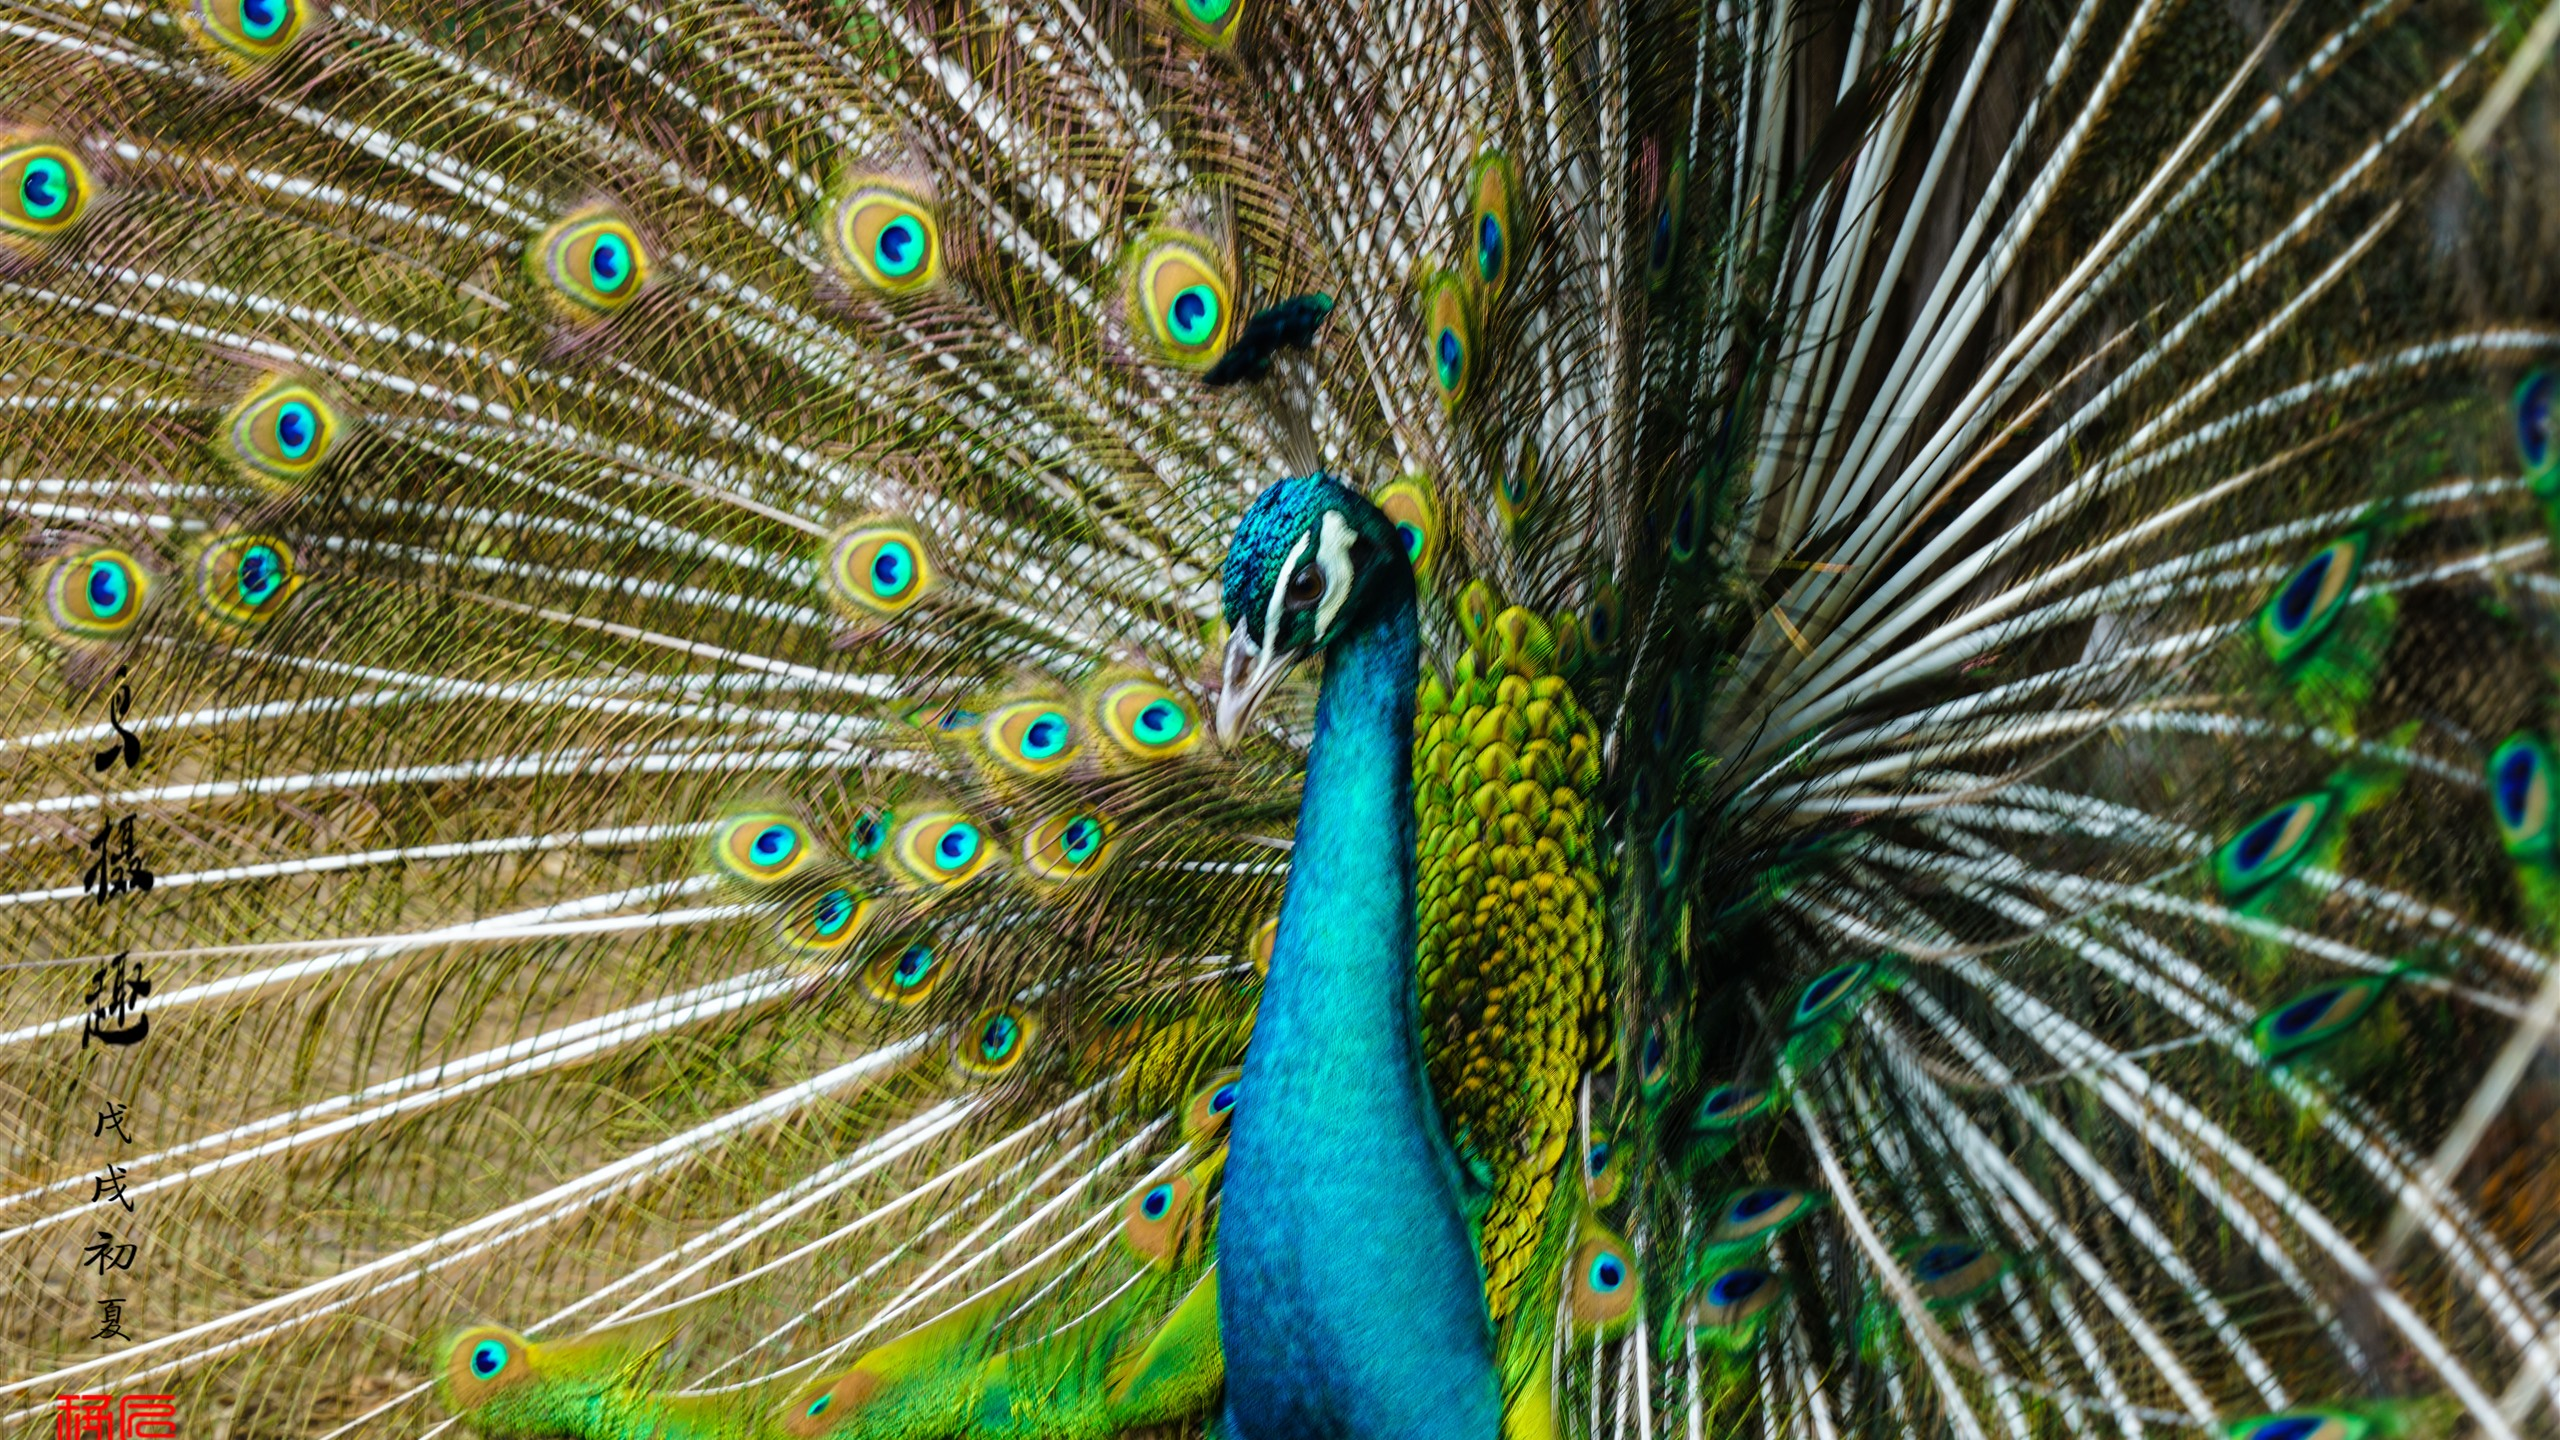 Wallpaper Peacock Tail Open Beautiful Feathers 7680x4320